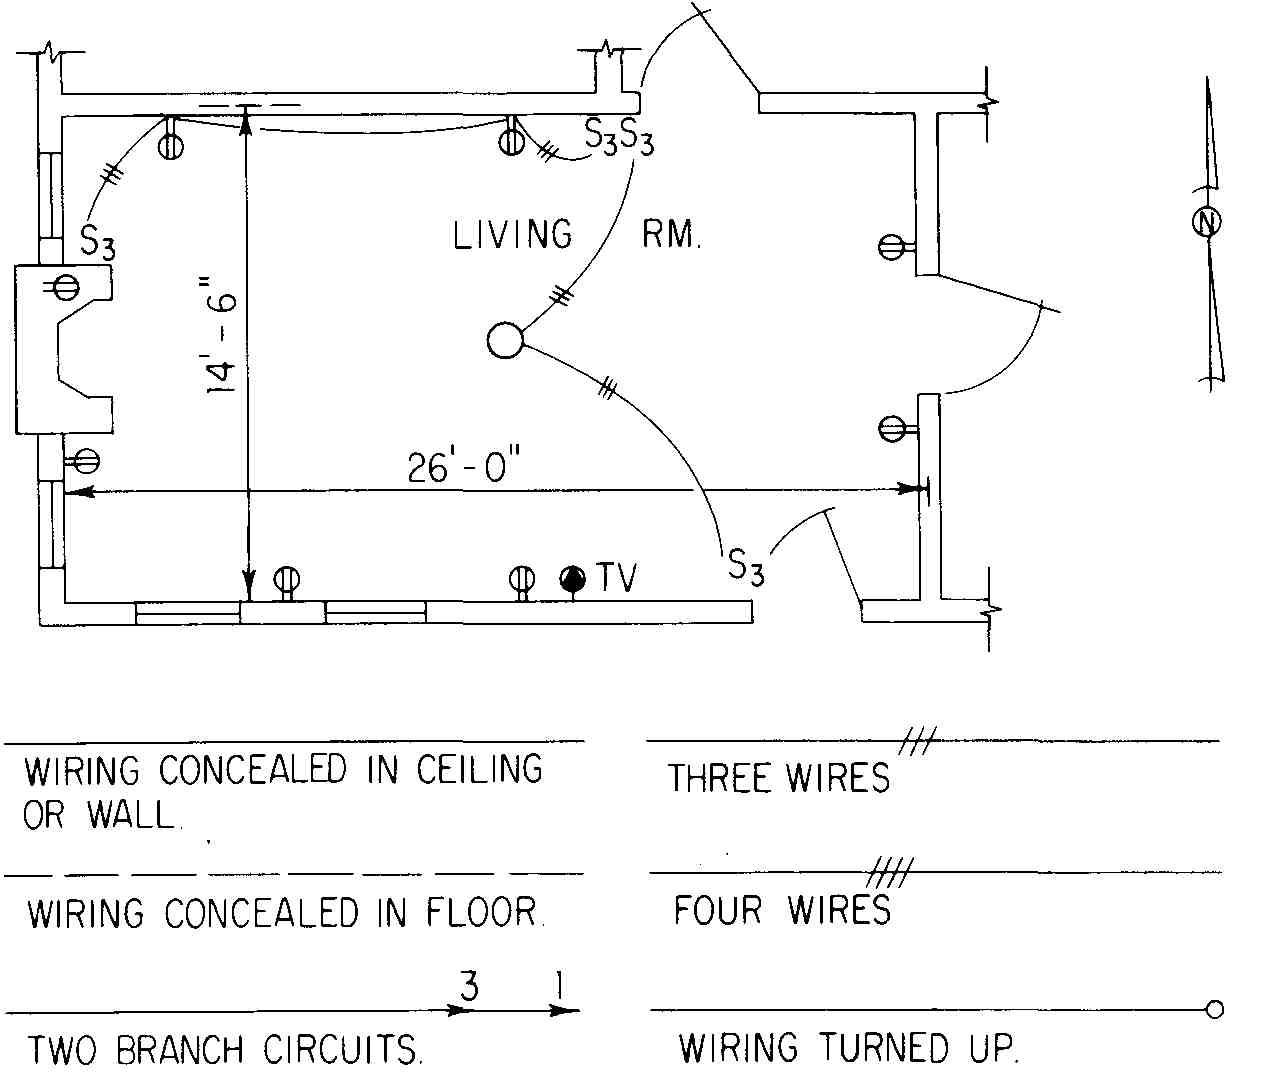 electrical drawing for architectural plans 100 amp breaker box fuses Old Breaker  Box Fuses